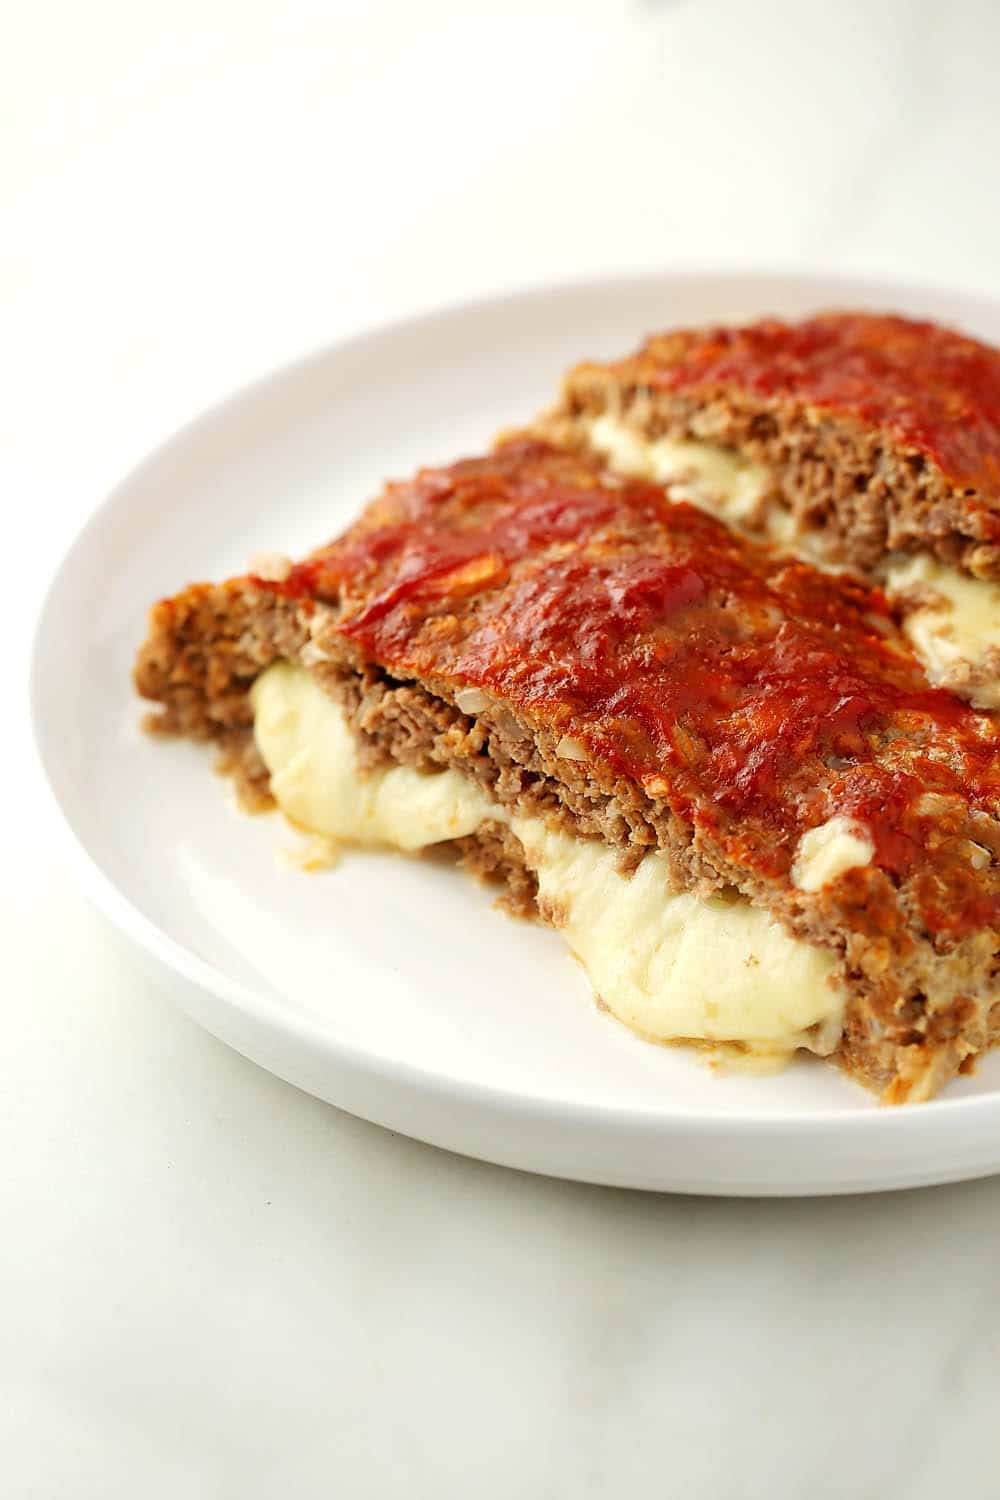 plate with meatloaf stuffed with melting cheese